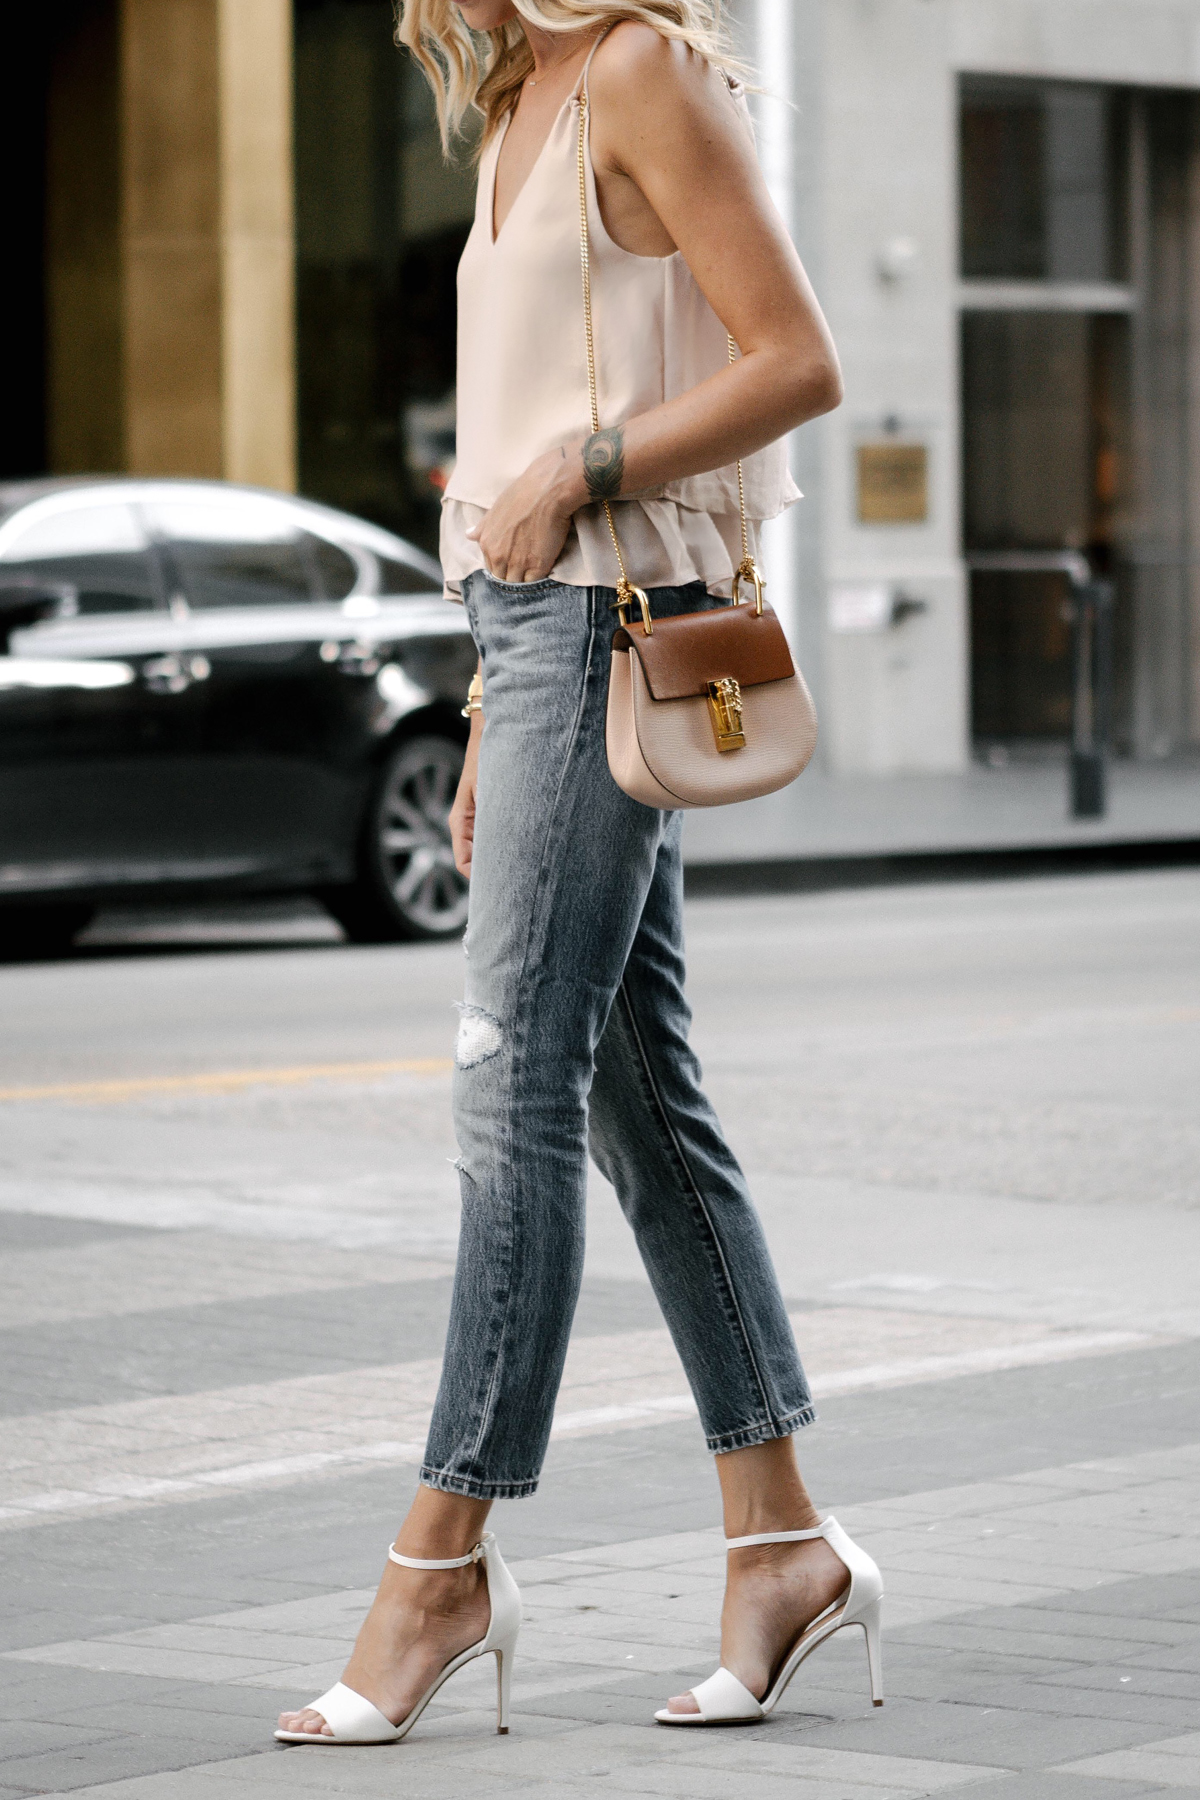 Mango Blush Pink Camisole Levis Distressed Jeans Aldo White Heeled Sandals Chloe Drew Handbag